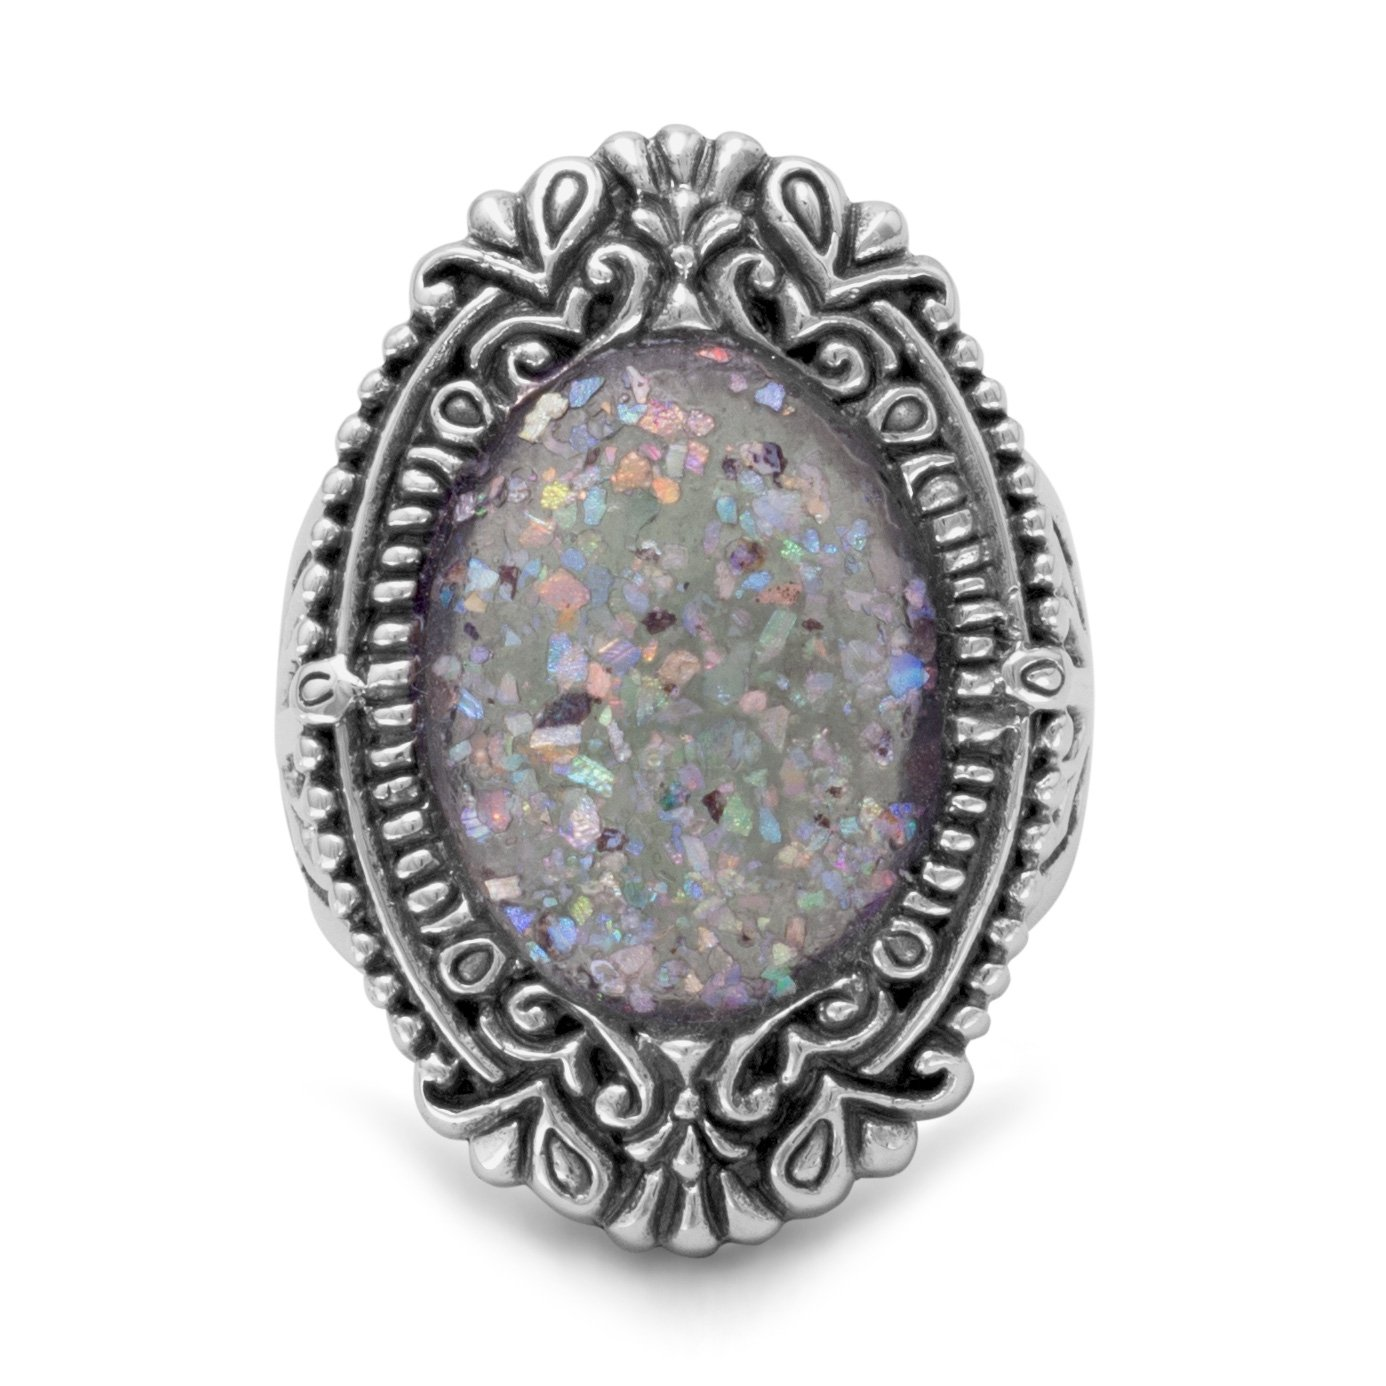 925 Sterling Silver Ornate Oval Roman Glass Ring - Size 6